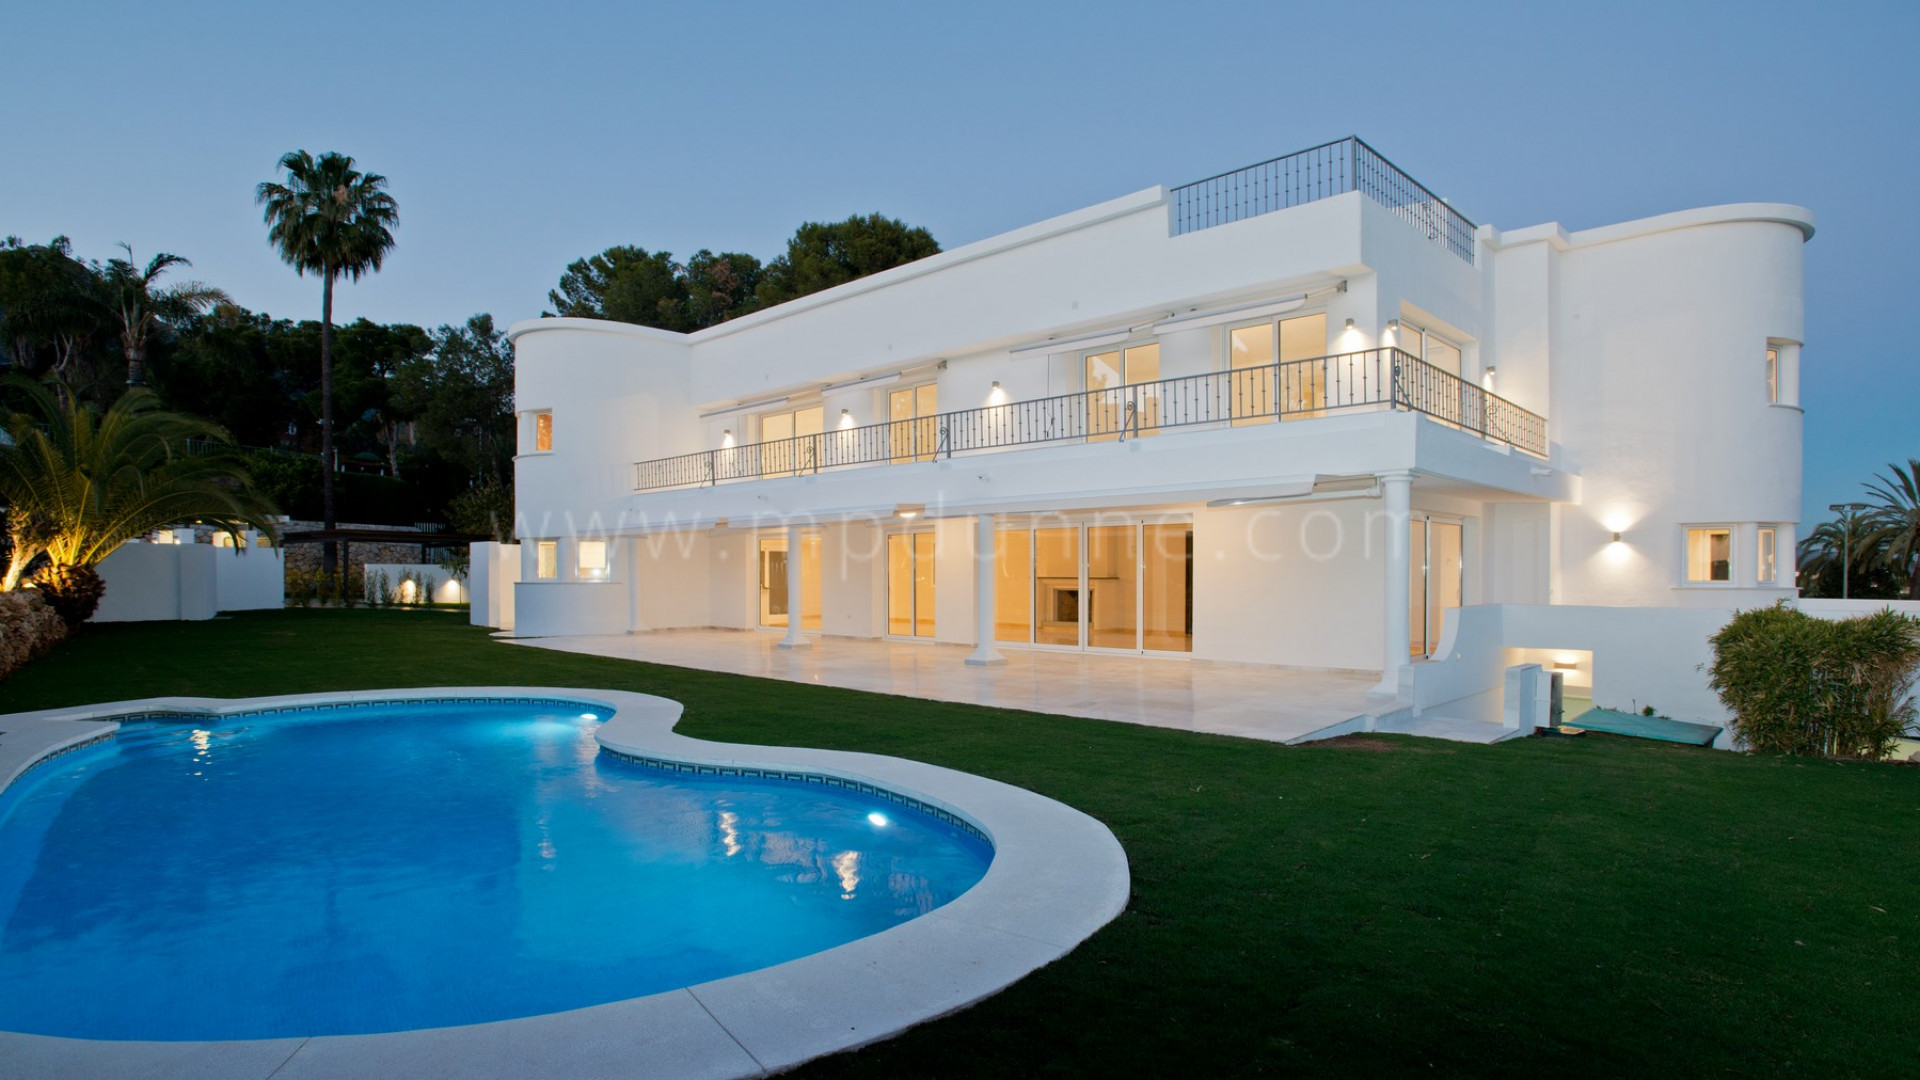 Luxury Family Villa in Altos Reales Marbella